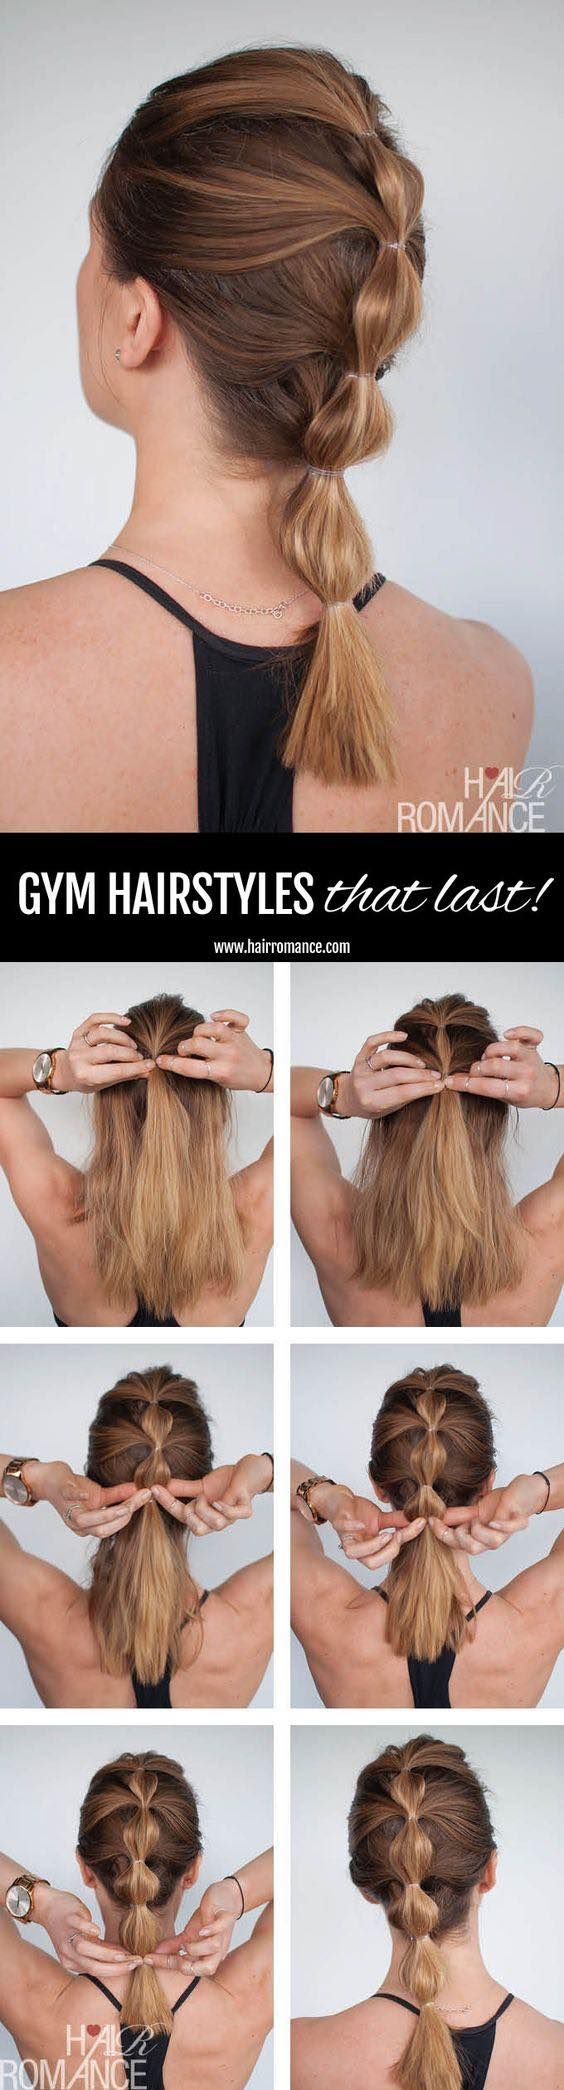 Hair Romance Gym hairstyles — bubbly ponytail hairstyle tutorial / http://www.himisspuff.com/easy-diy-braided-hairstyles-tutorials/62/